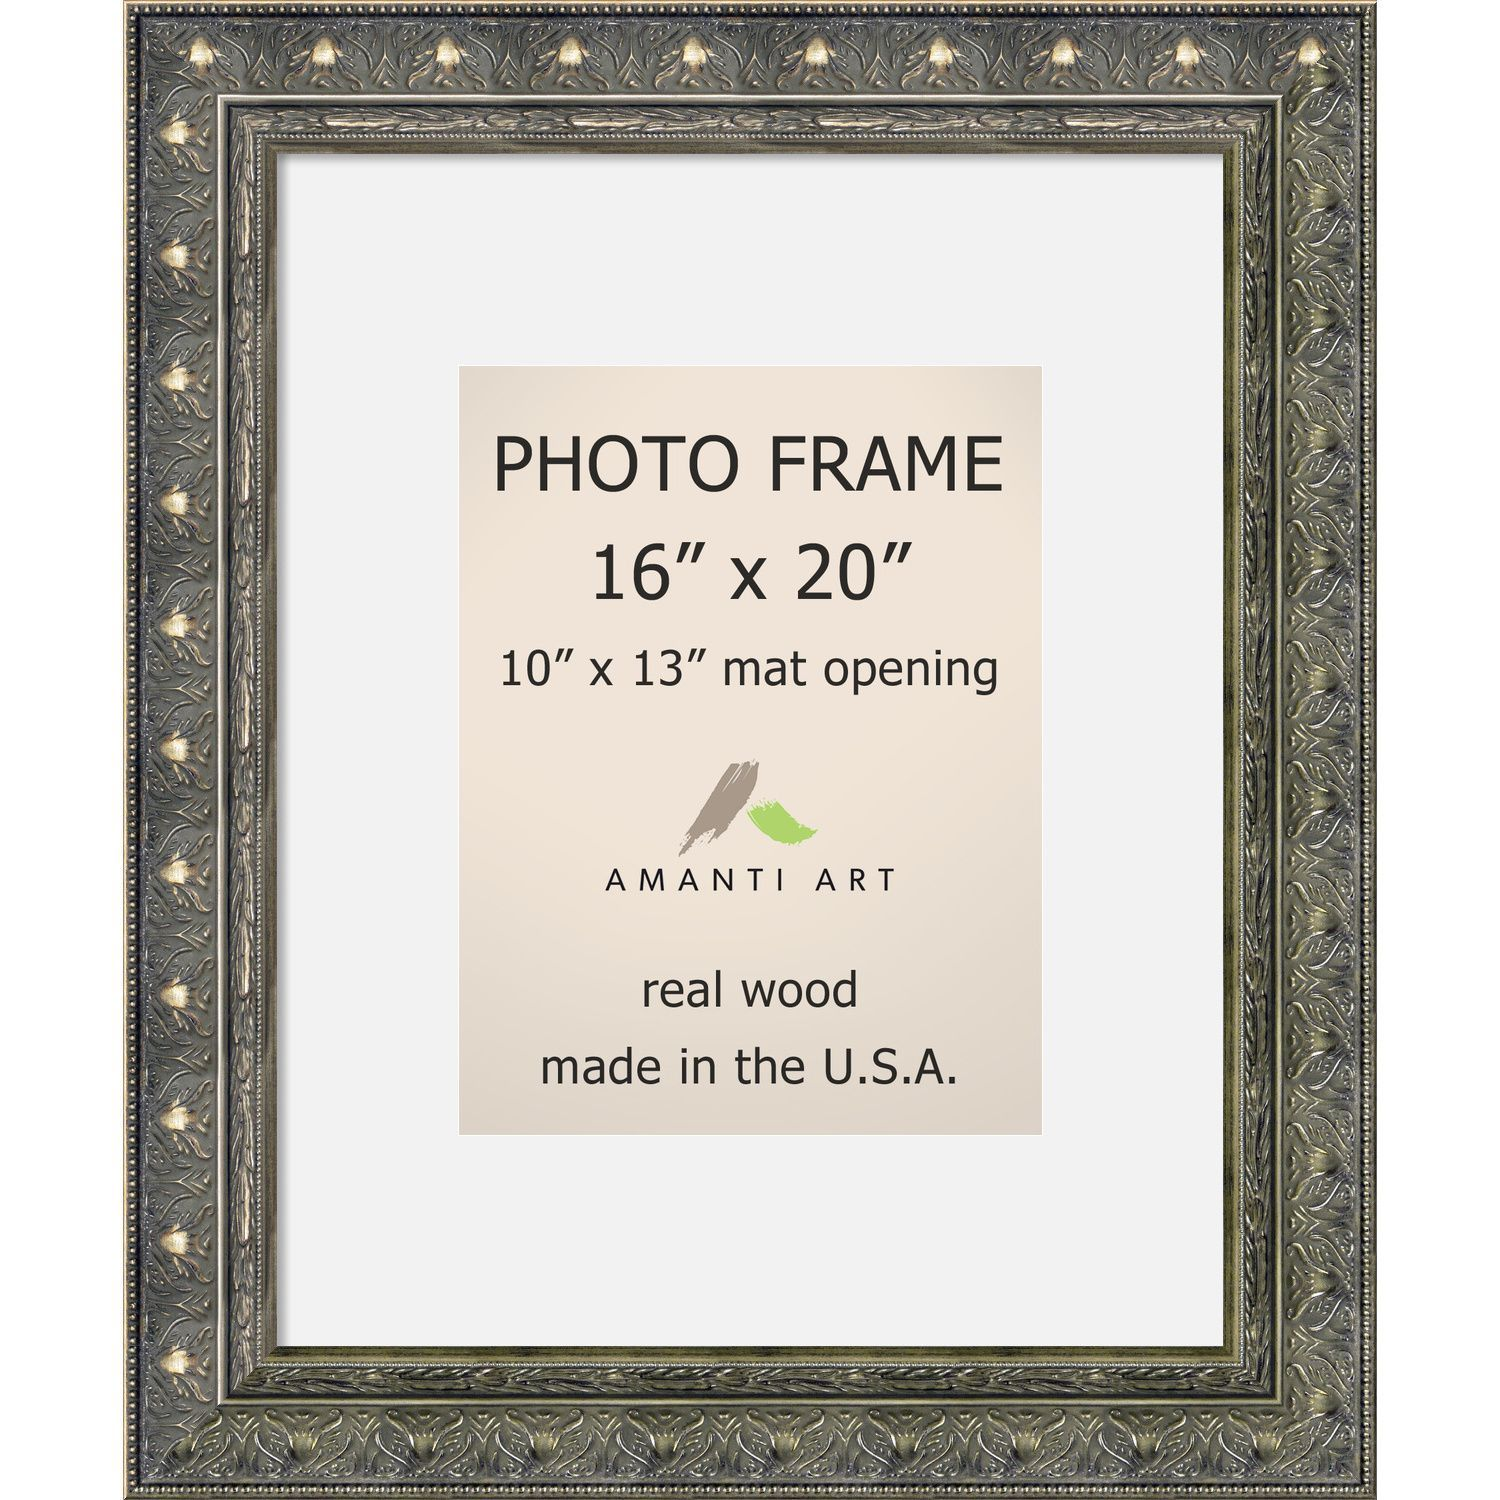 by mat oak wall bz oz ecohome matted barnwood natural tabletop frames picture for frame